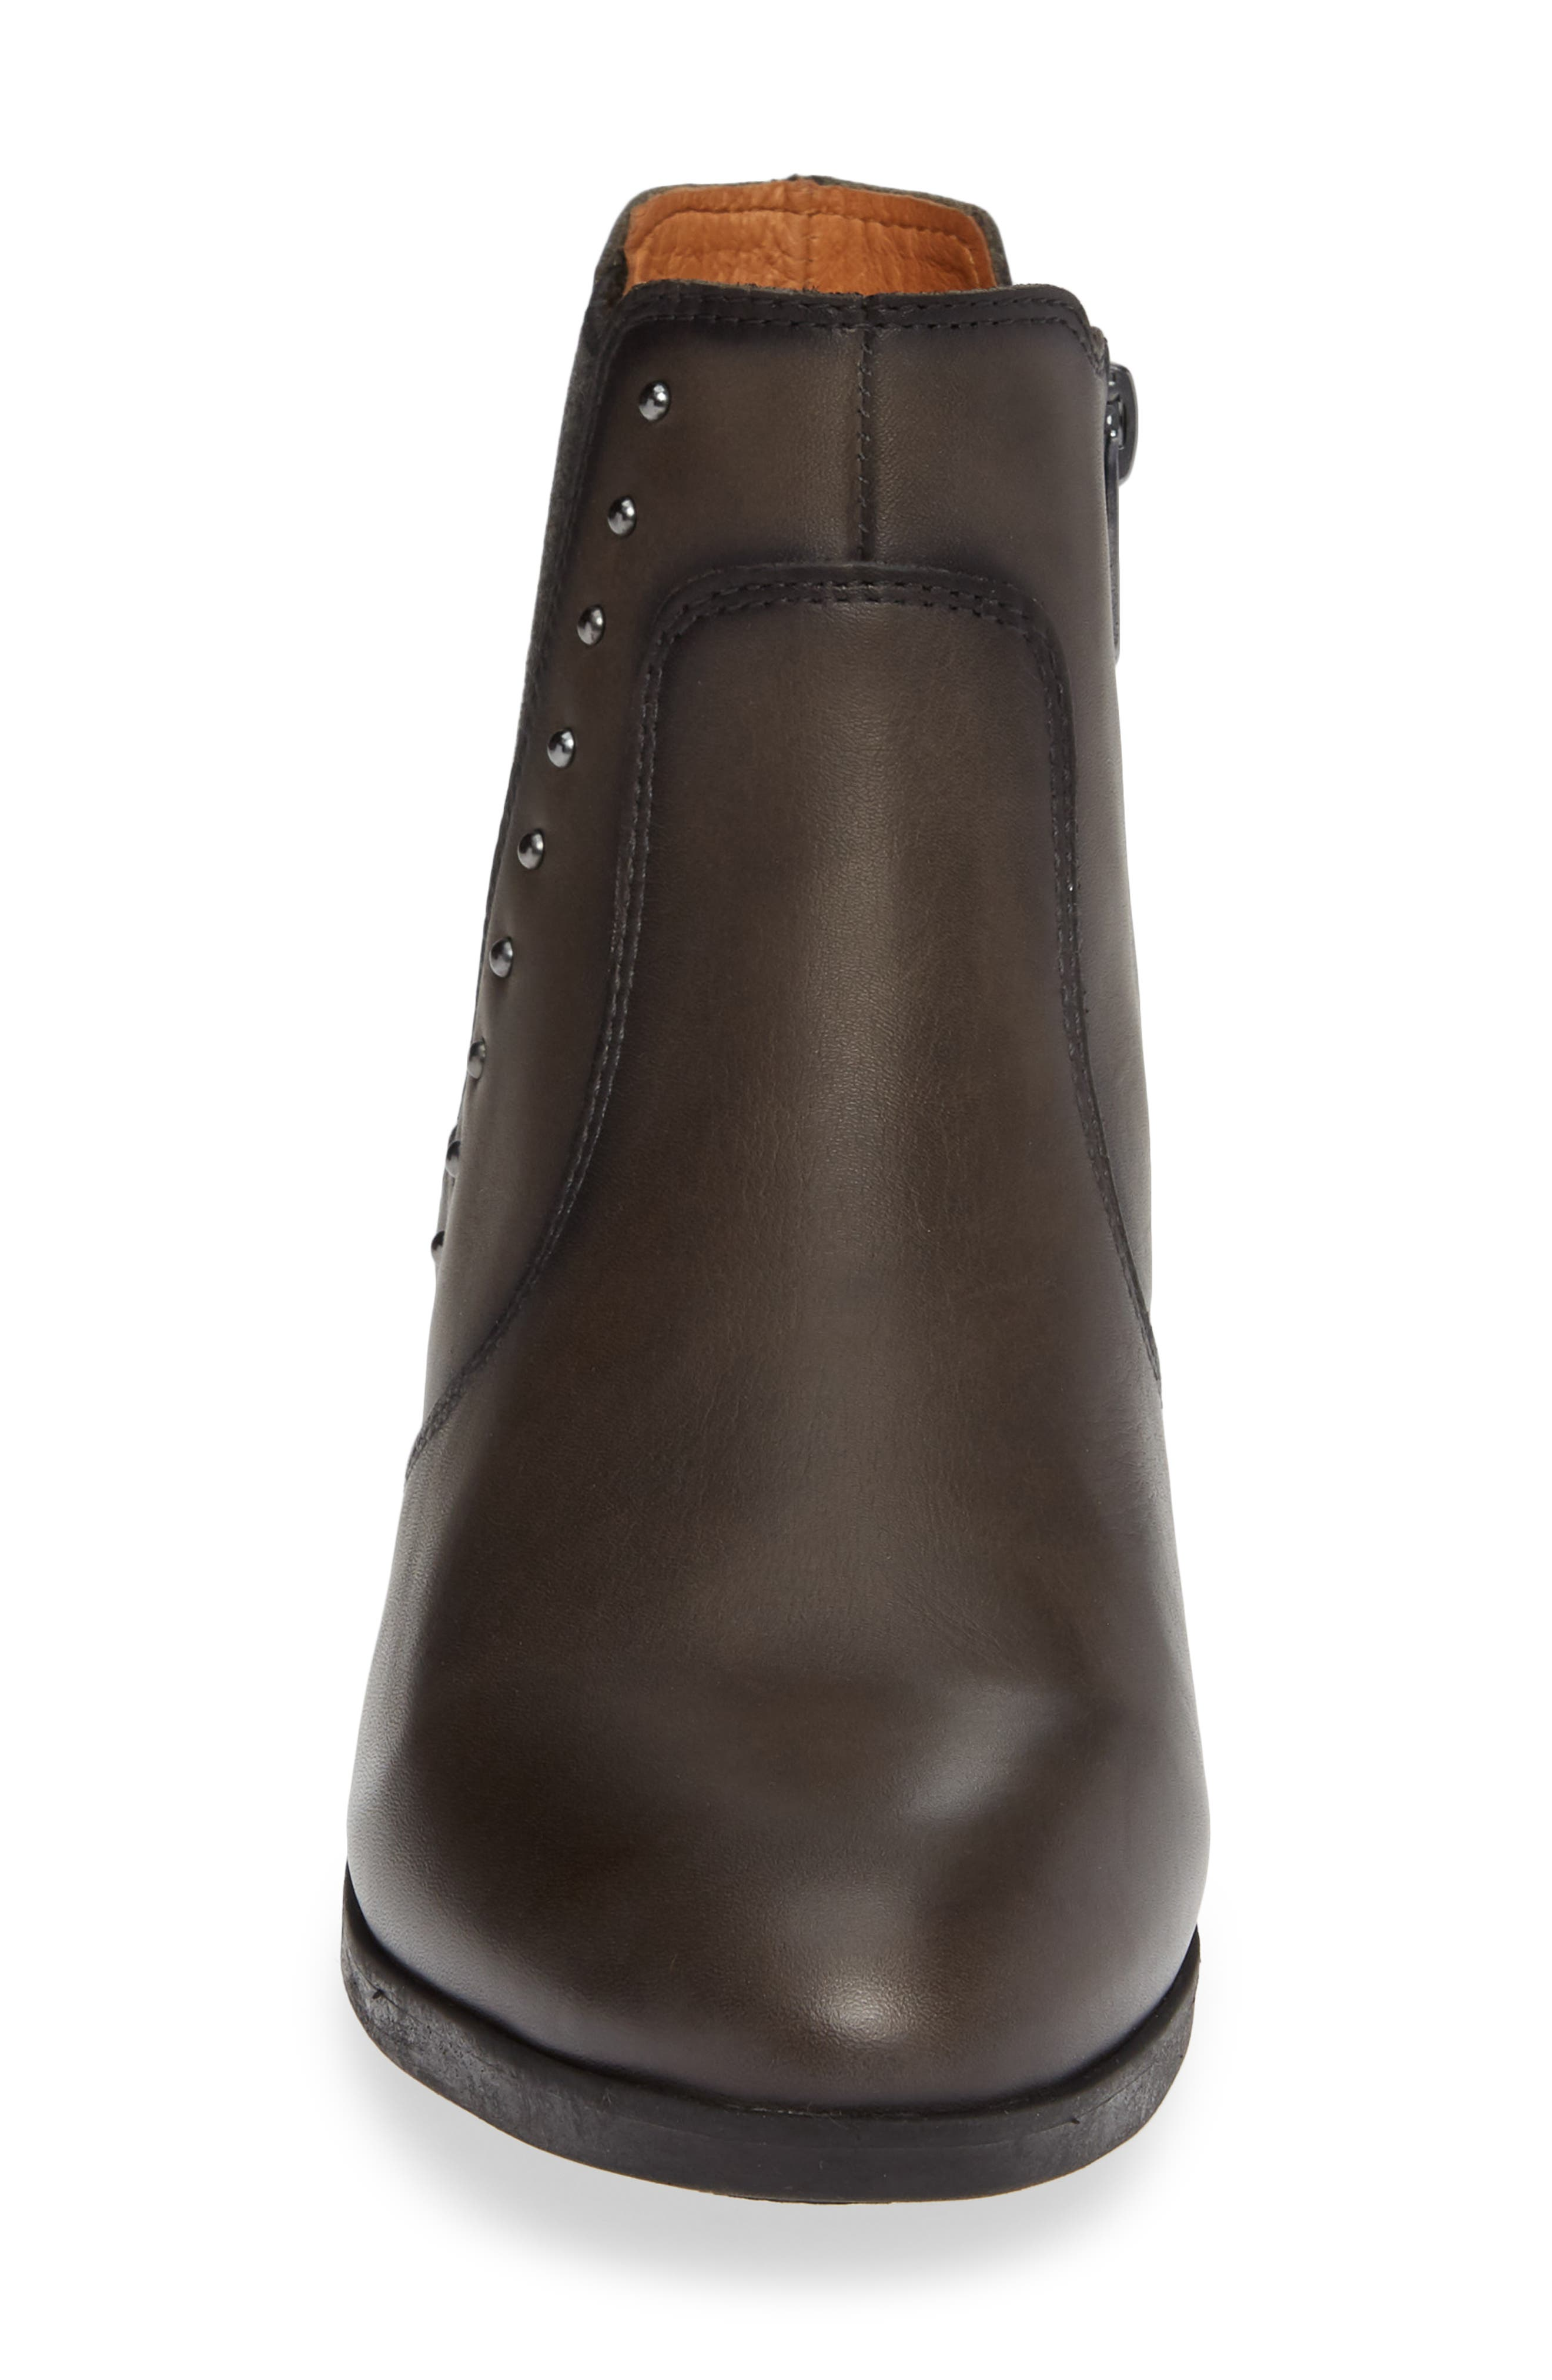 Daroca Studded Bootie,                             Alternate thumbnail 4, color,                             LEAD LEATHER